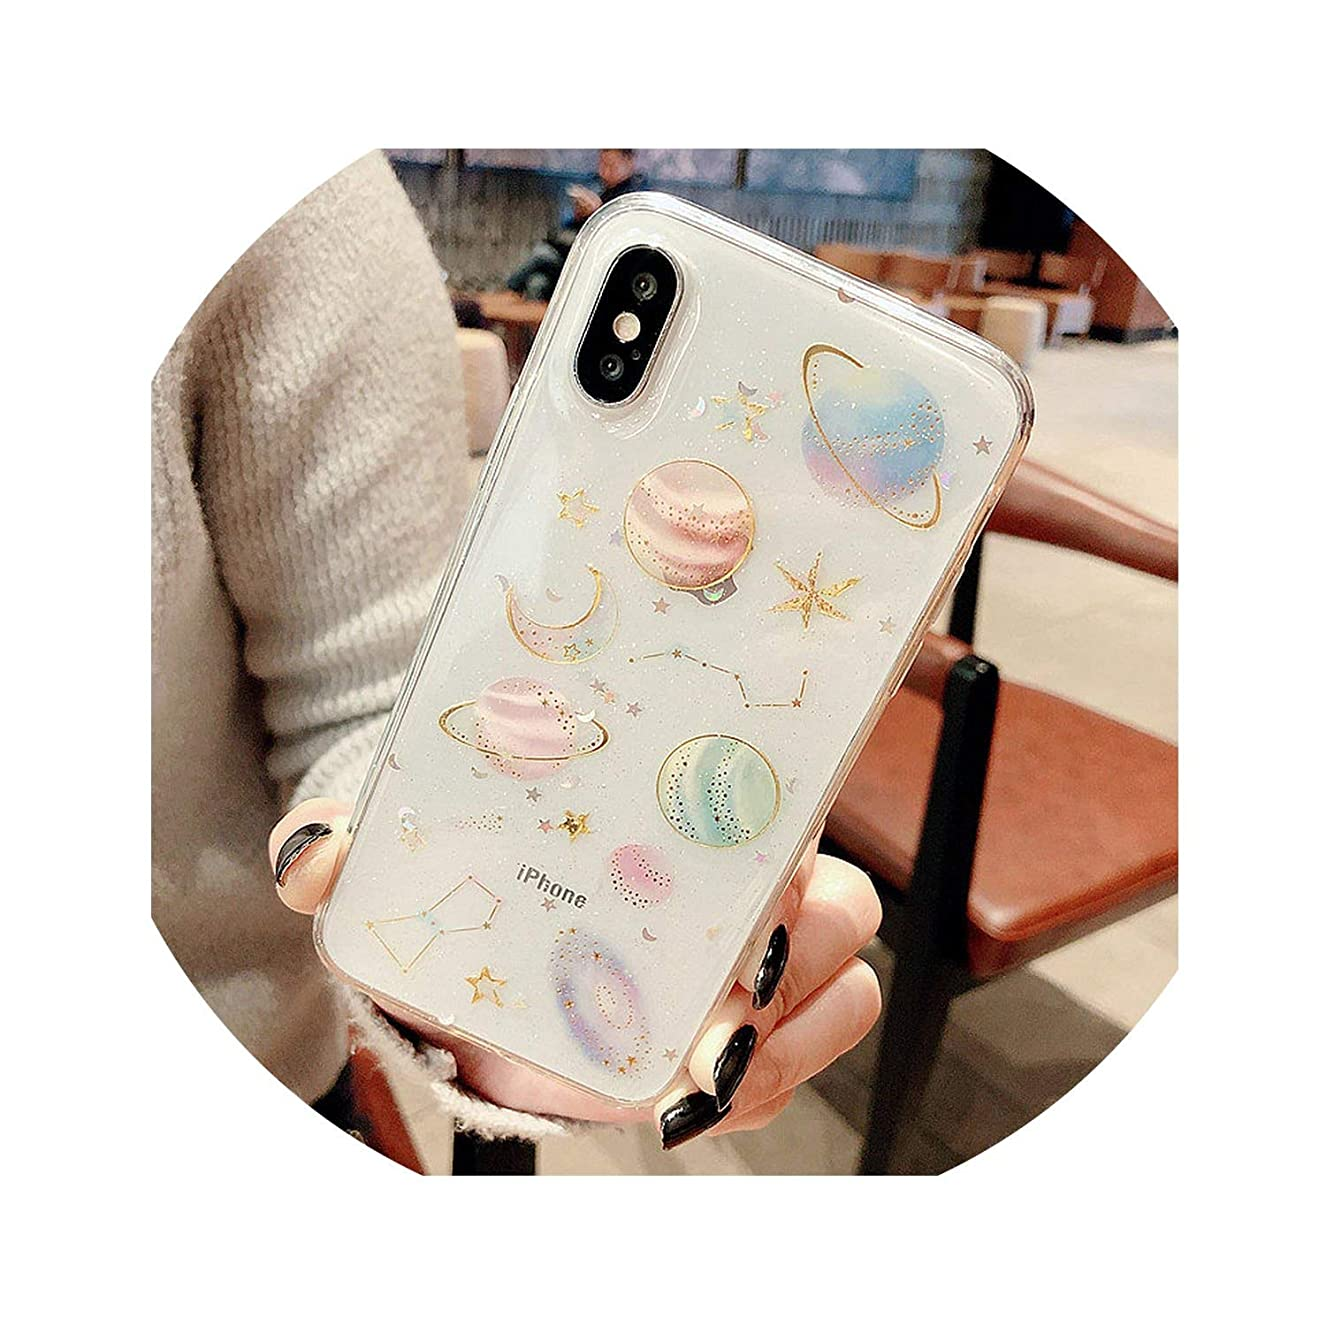 Luxury Glitter Cute Space Planet Phone Case for iPhone X XR XS MAX 7 8 Plus Clear Soft Silicone Back Cover for iPhone 6 6S 7Plus,Transparent,for iPhone 6 6S saqxhyxuzi3136